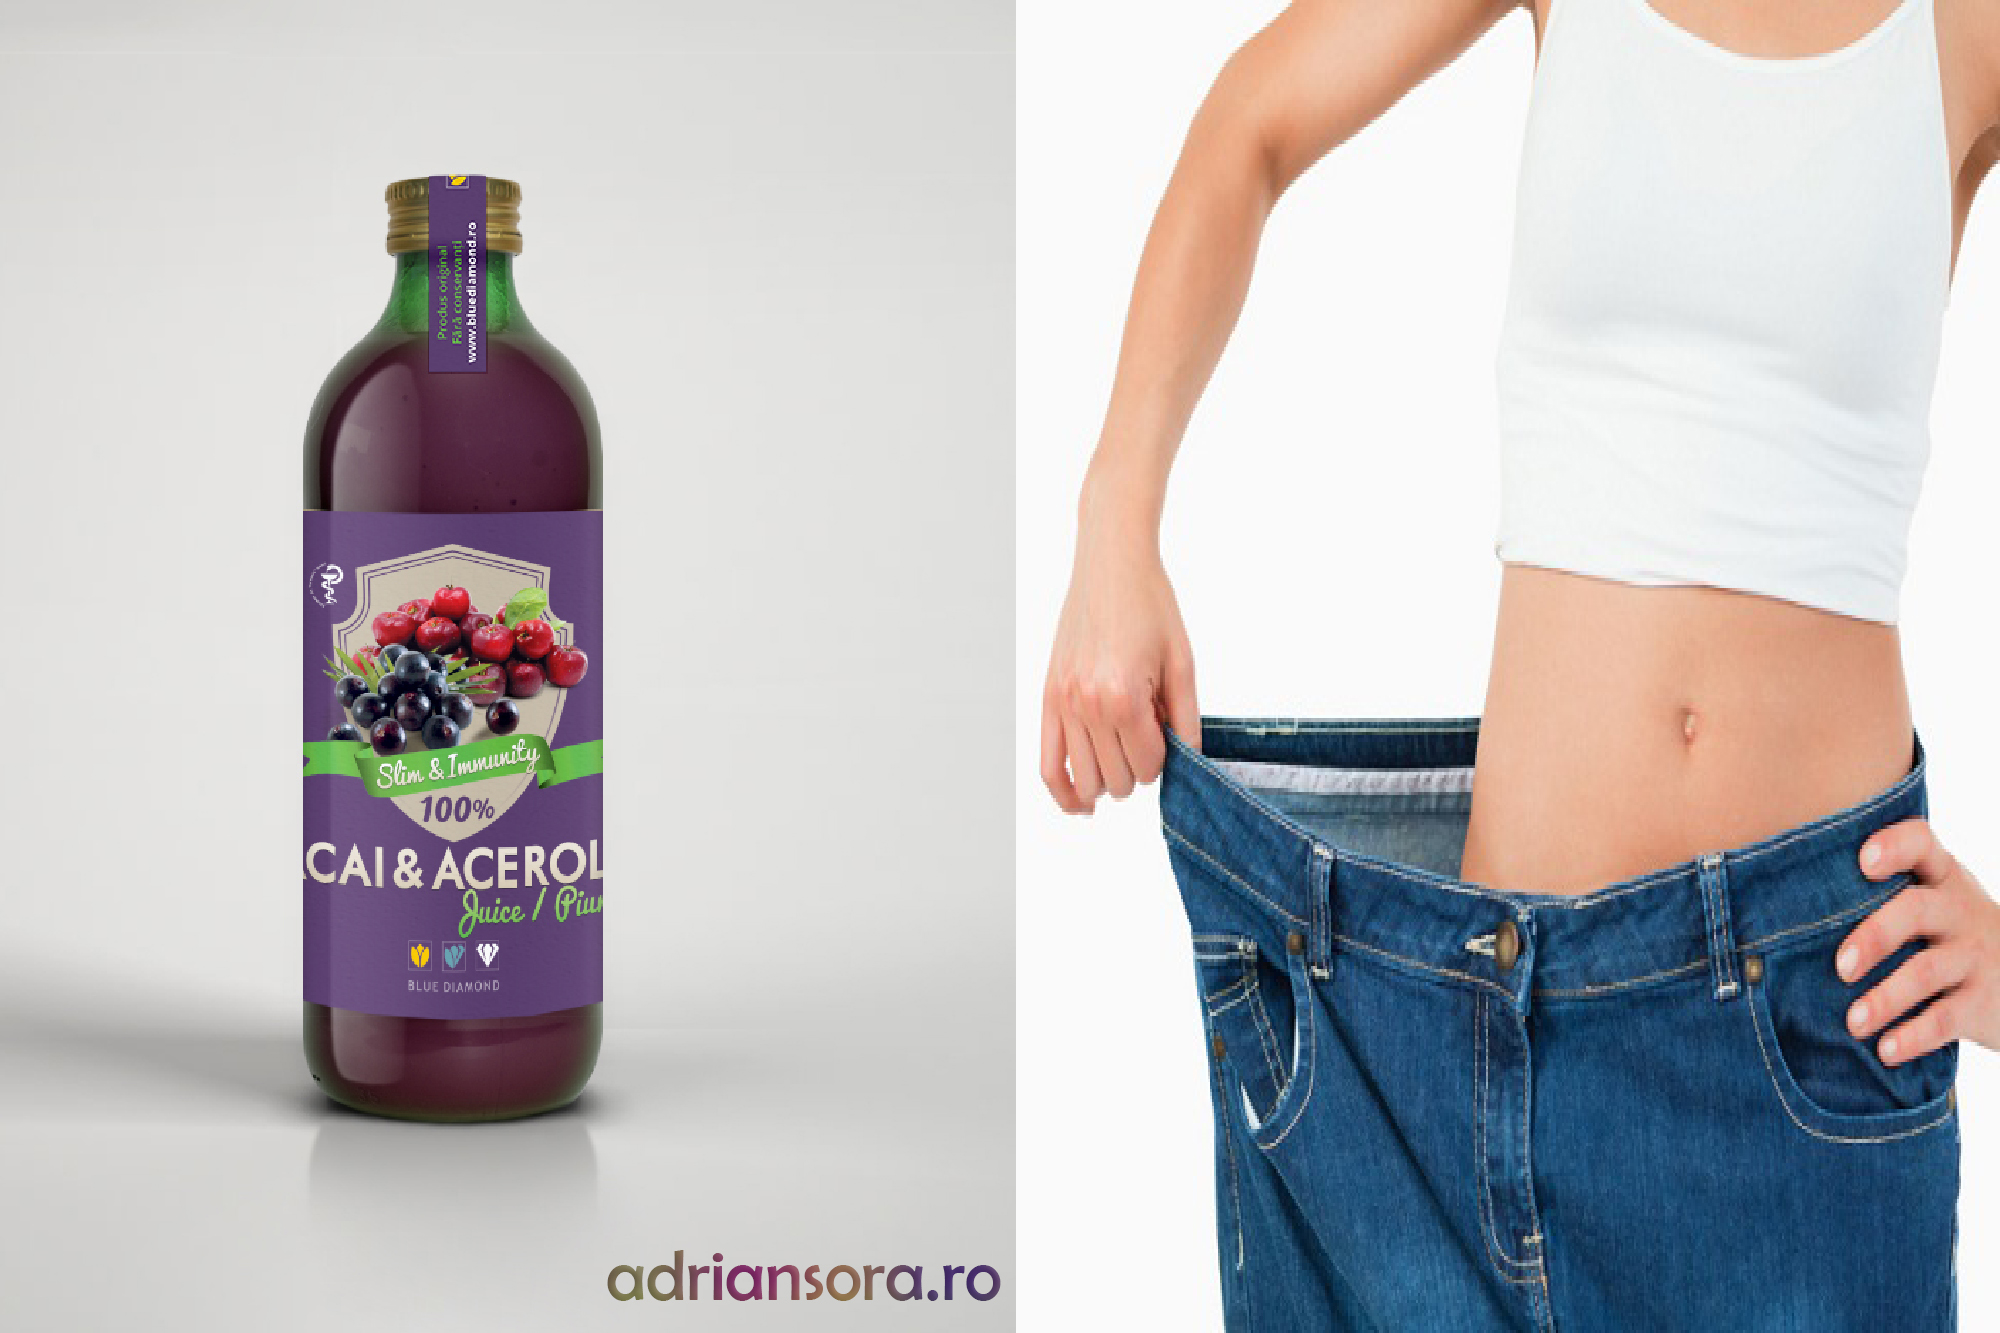 Acai & acerola juice 100% puree